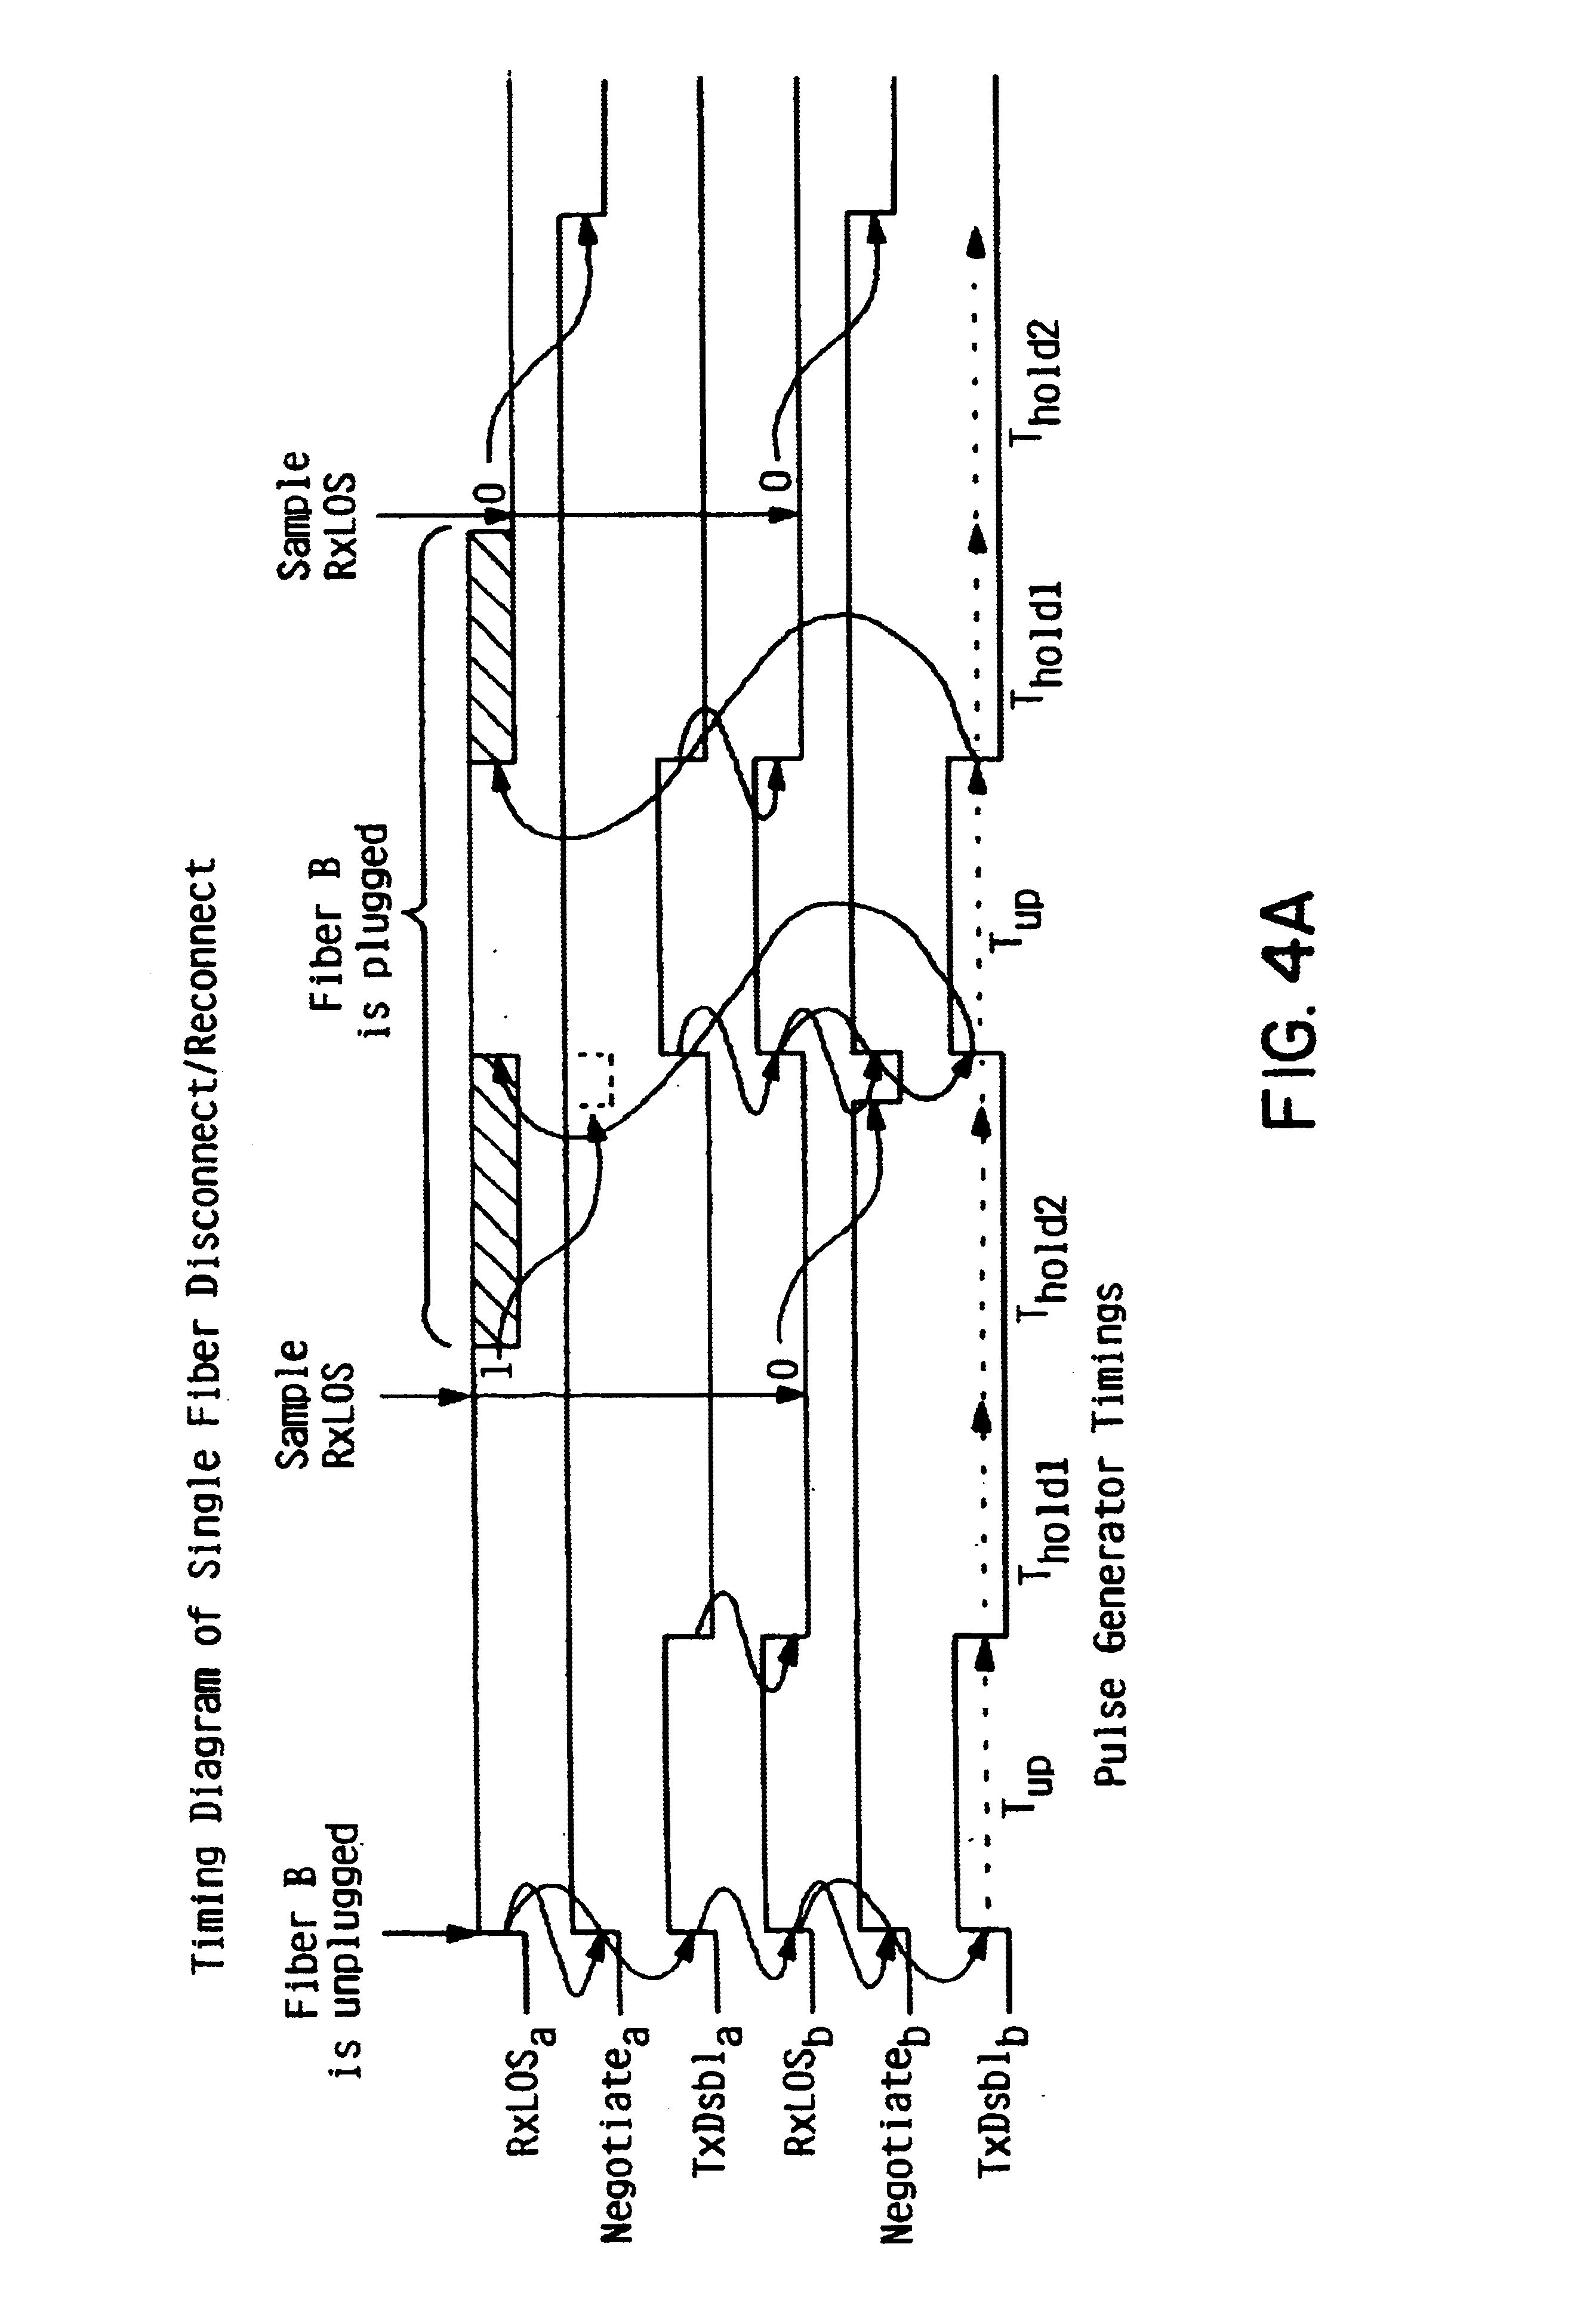 patent us6771694 - speed negotiation for serial transceivers